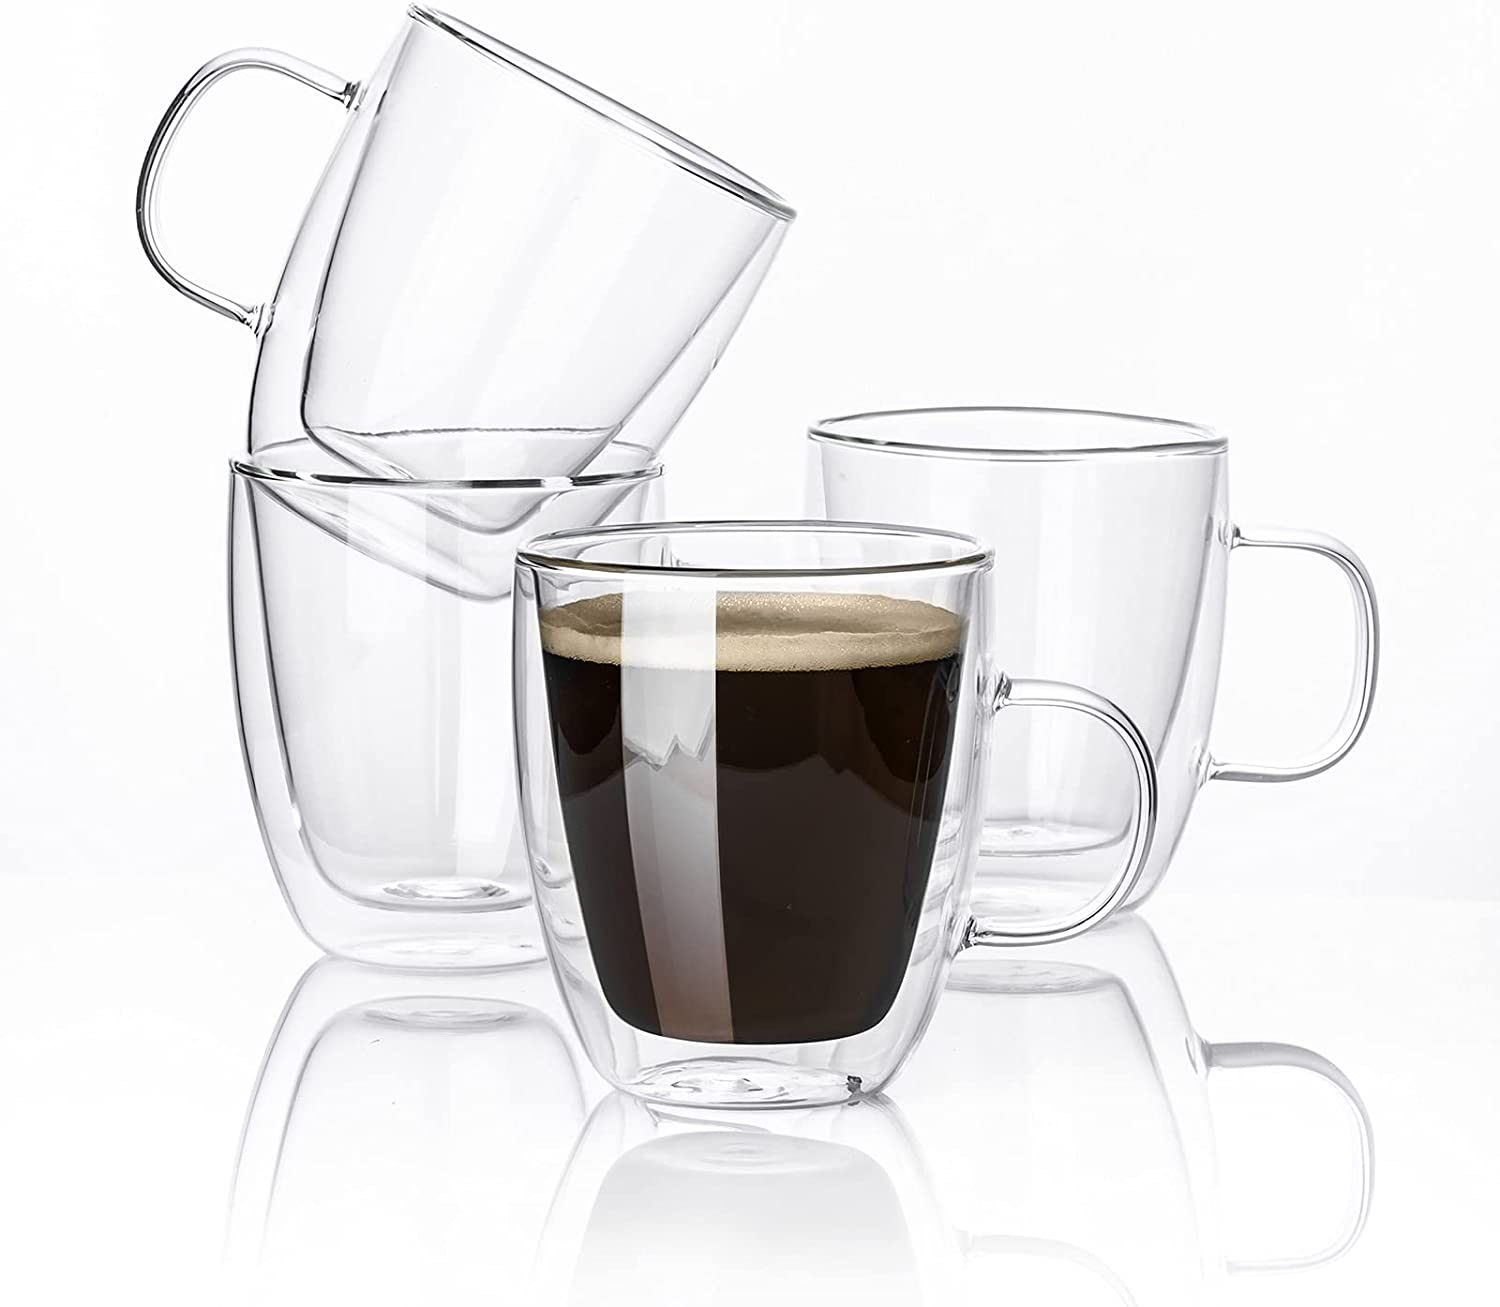 Kanwone Glass Coffee Mugs - 12.5 Ounce - Double Wall Insulated Mug set with Handle, Clear Coffee Mugs, Perfect for Latte, Americano, Cappuccinos, Tea Bag, Beverage, Set of 4